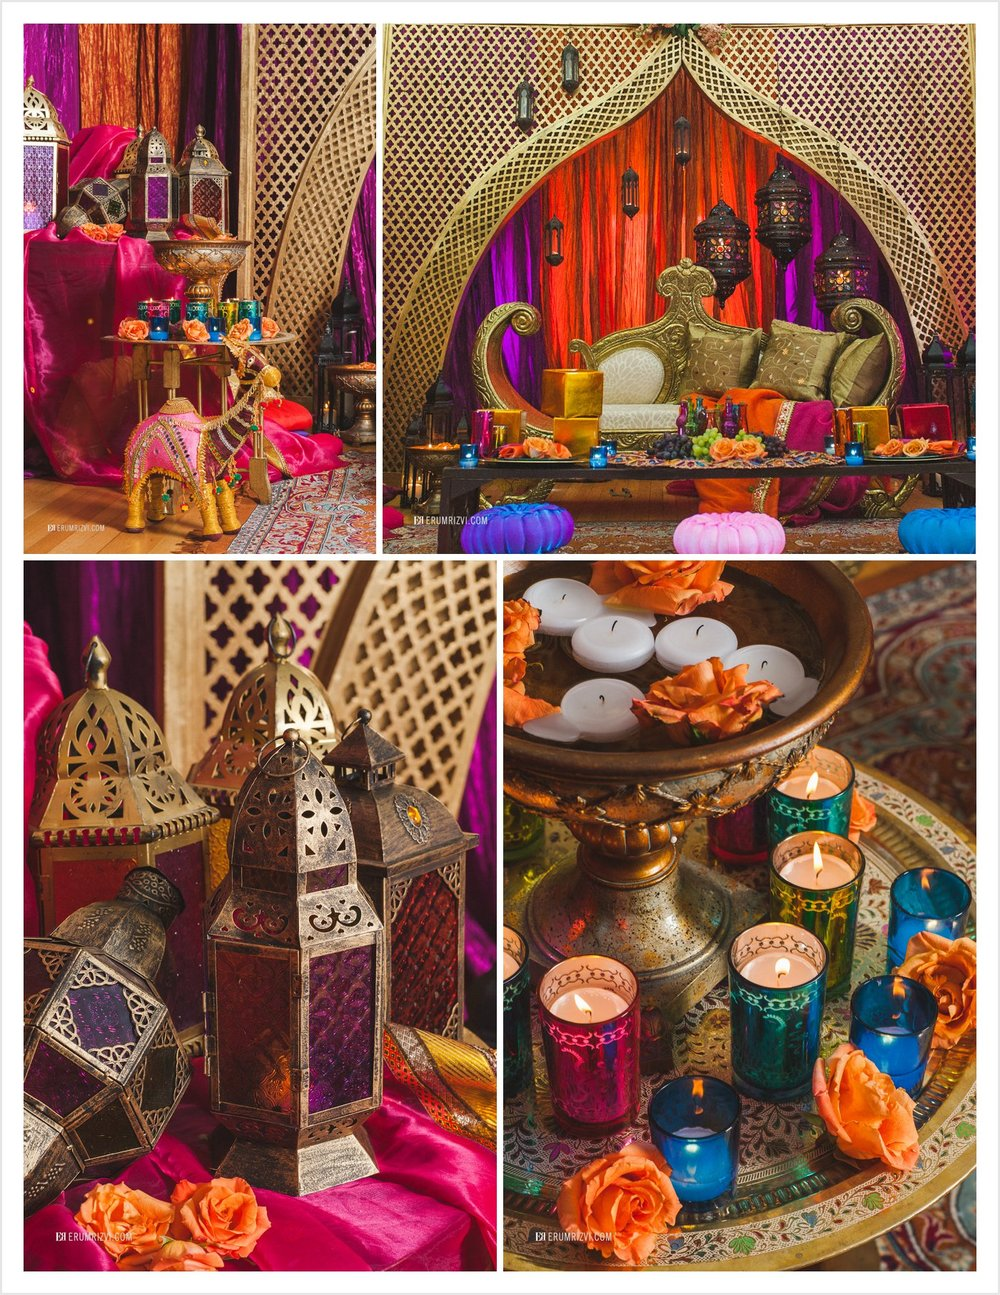 Rajasthani Indian Themed Wedding Decor, Wedding Photographer DC